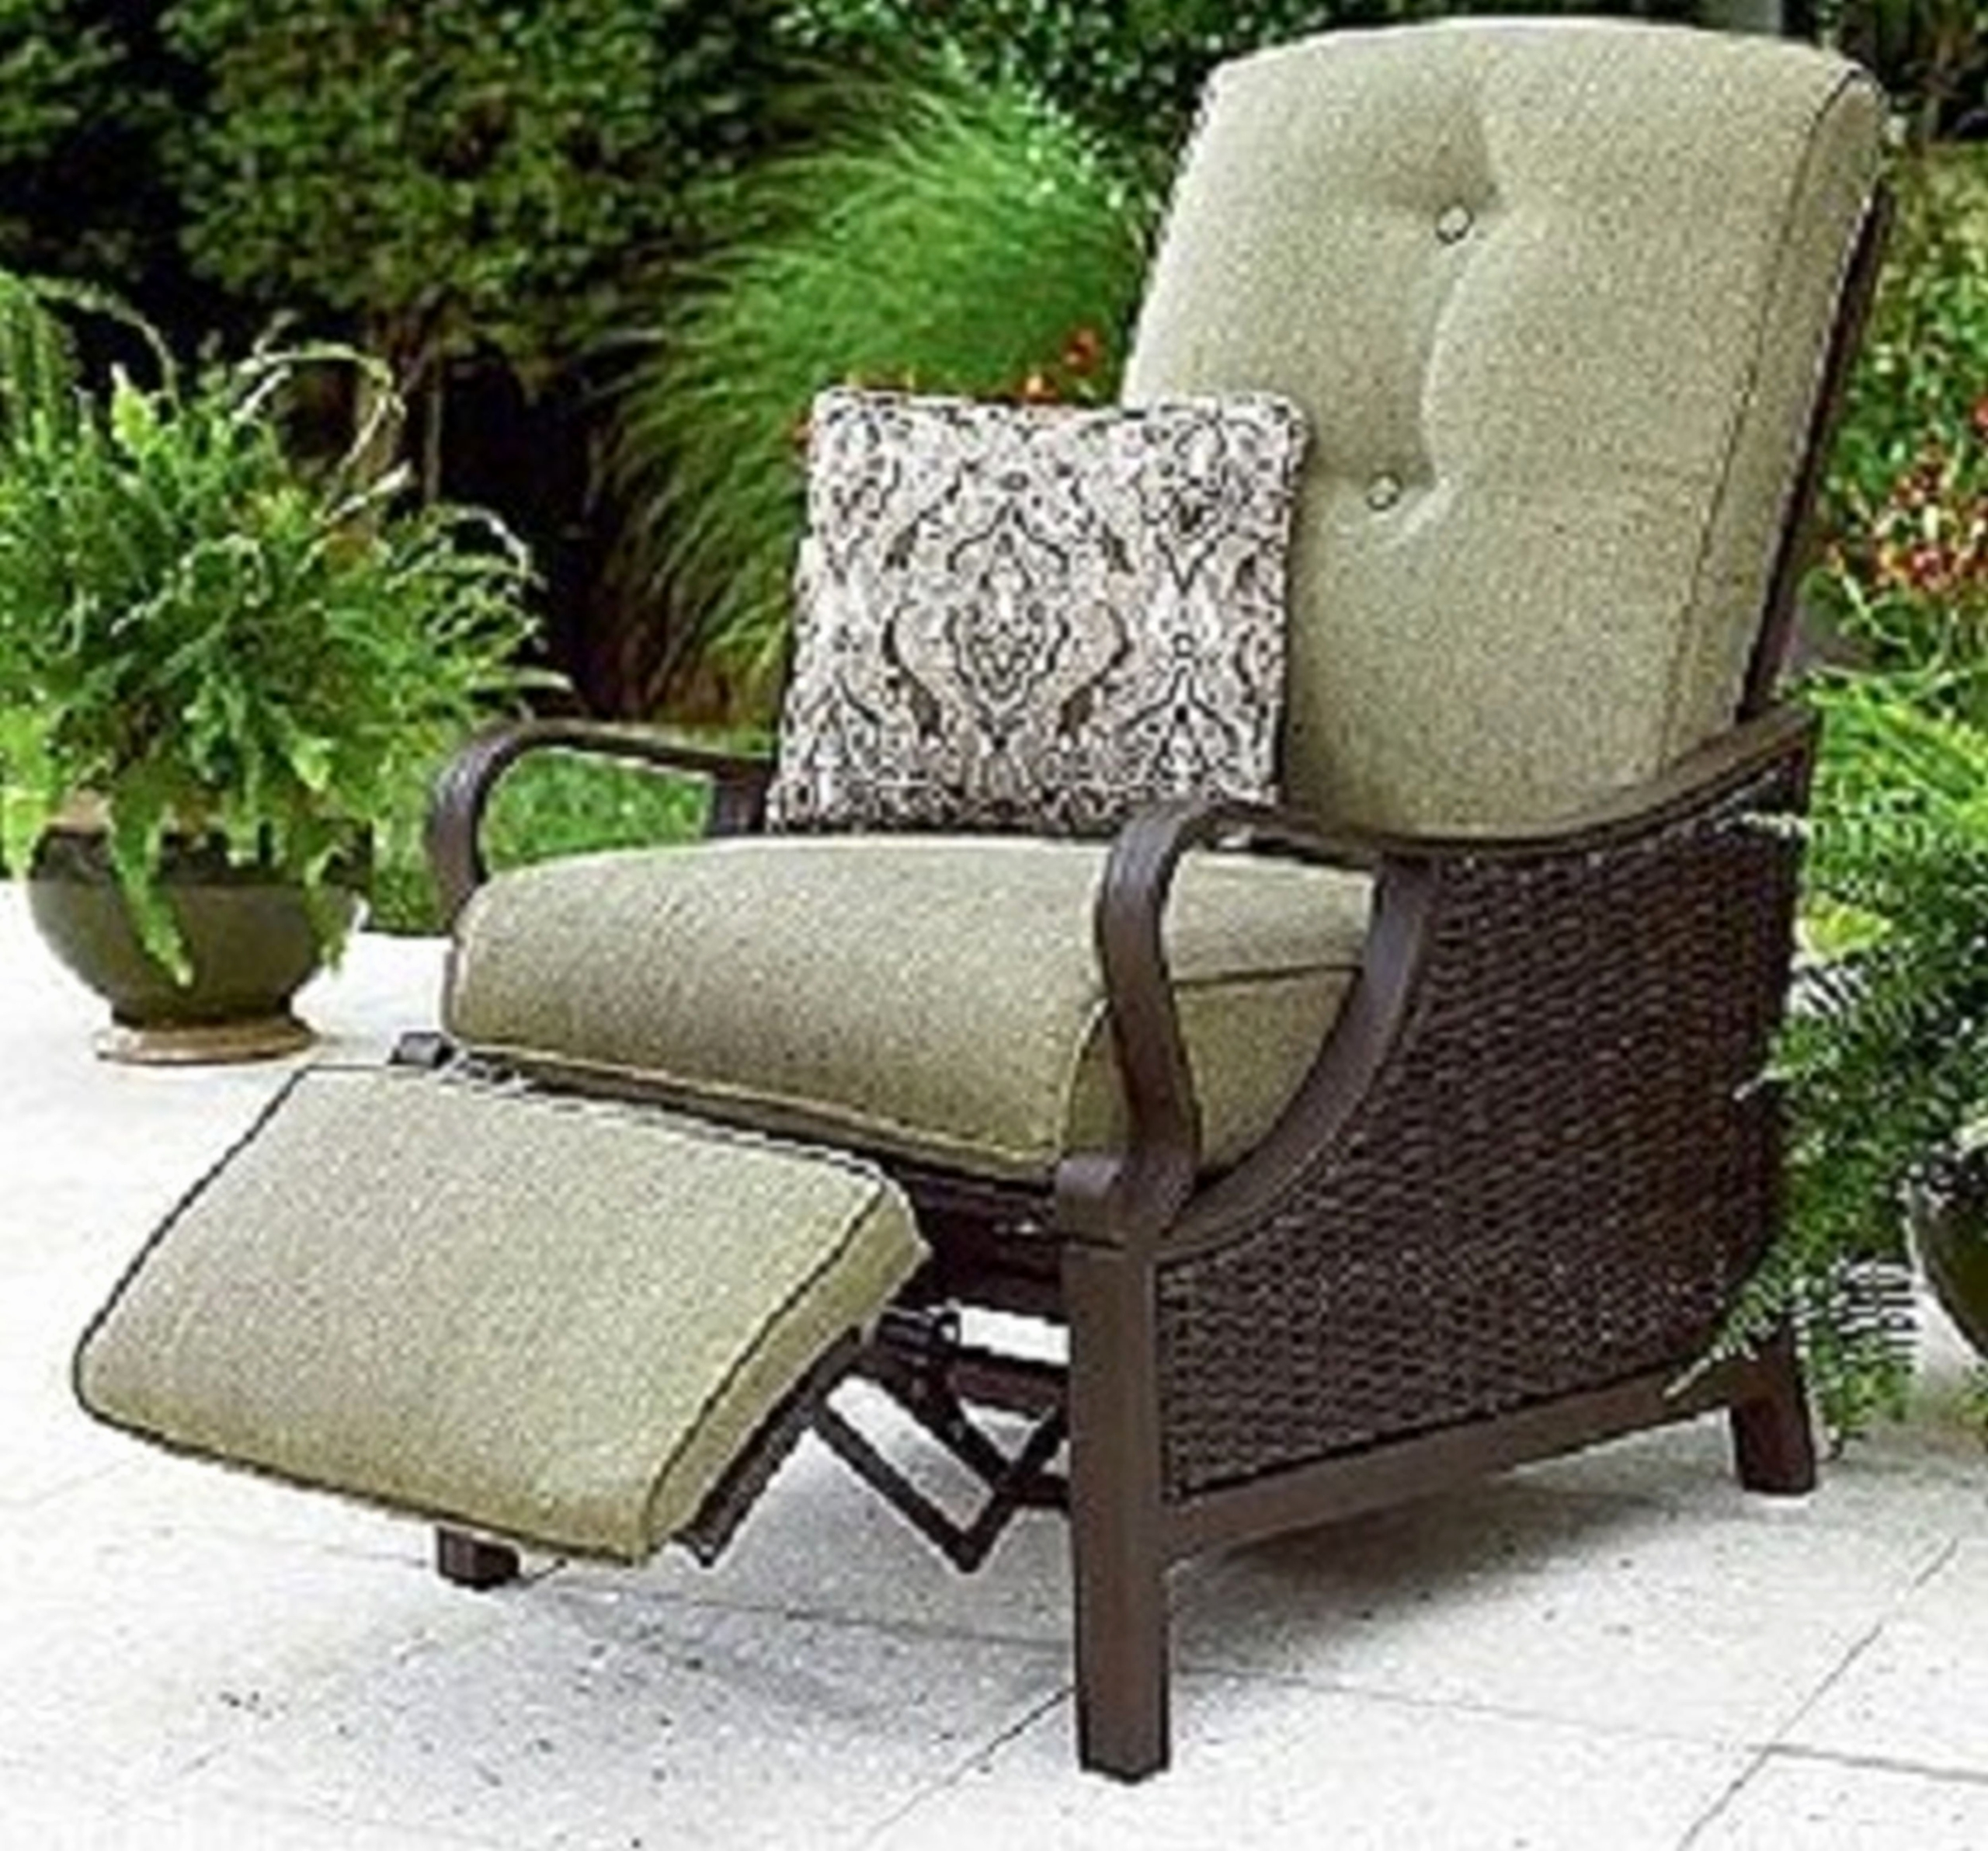 outdoor patio recliners foter rh foter com outdoor patio chairs and table outdoor patio chairs and table